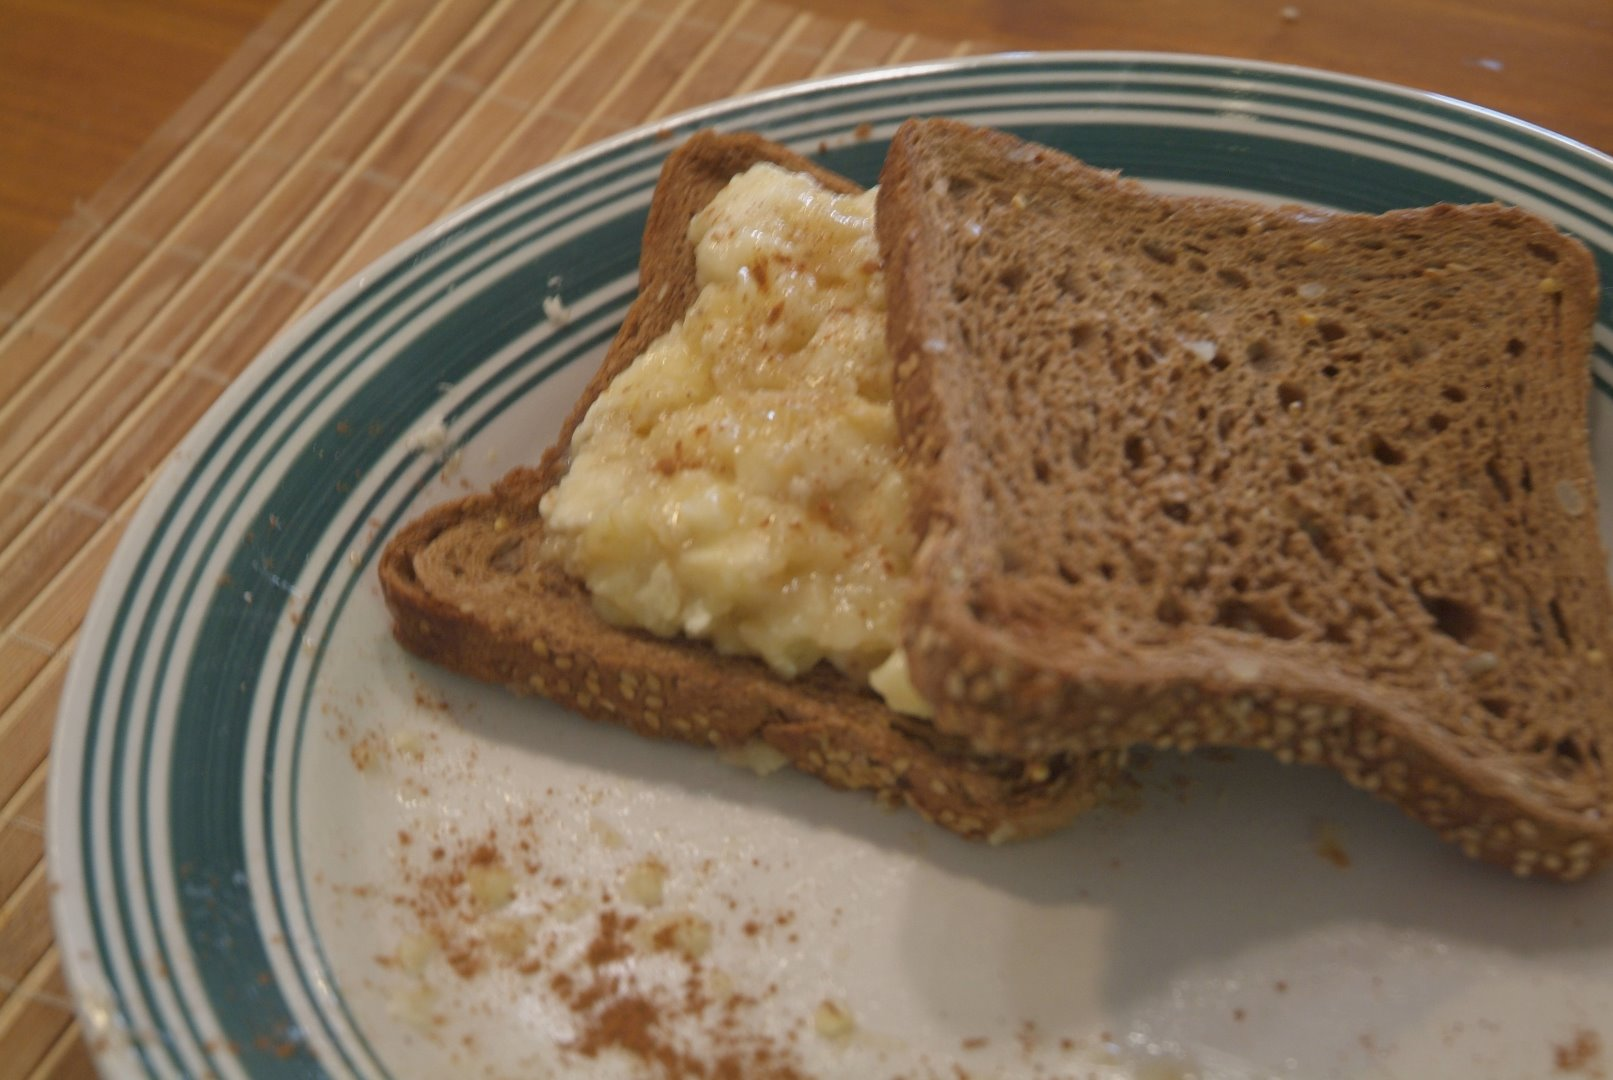 Picture of 1 Minute Toasted Banana Sandwich